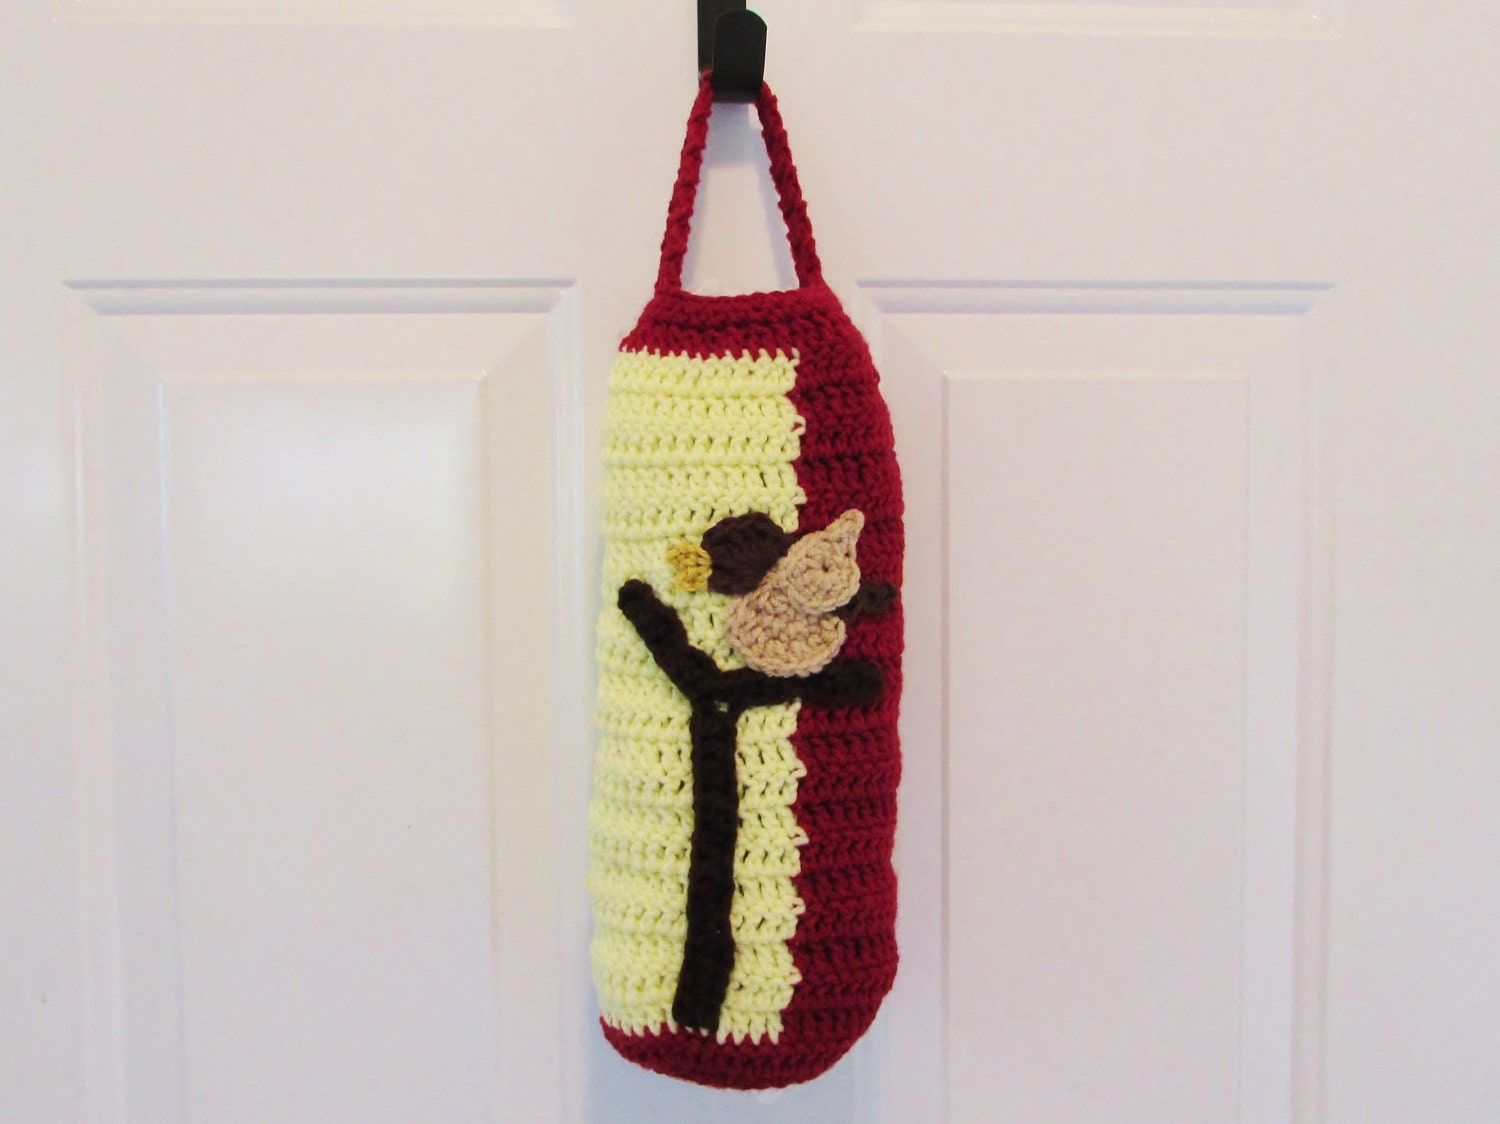 Grocery Bag Dispenser Crochet Plastic bag holder Singing